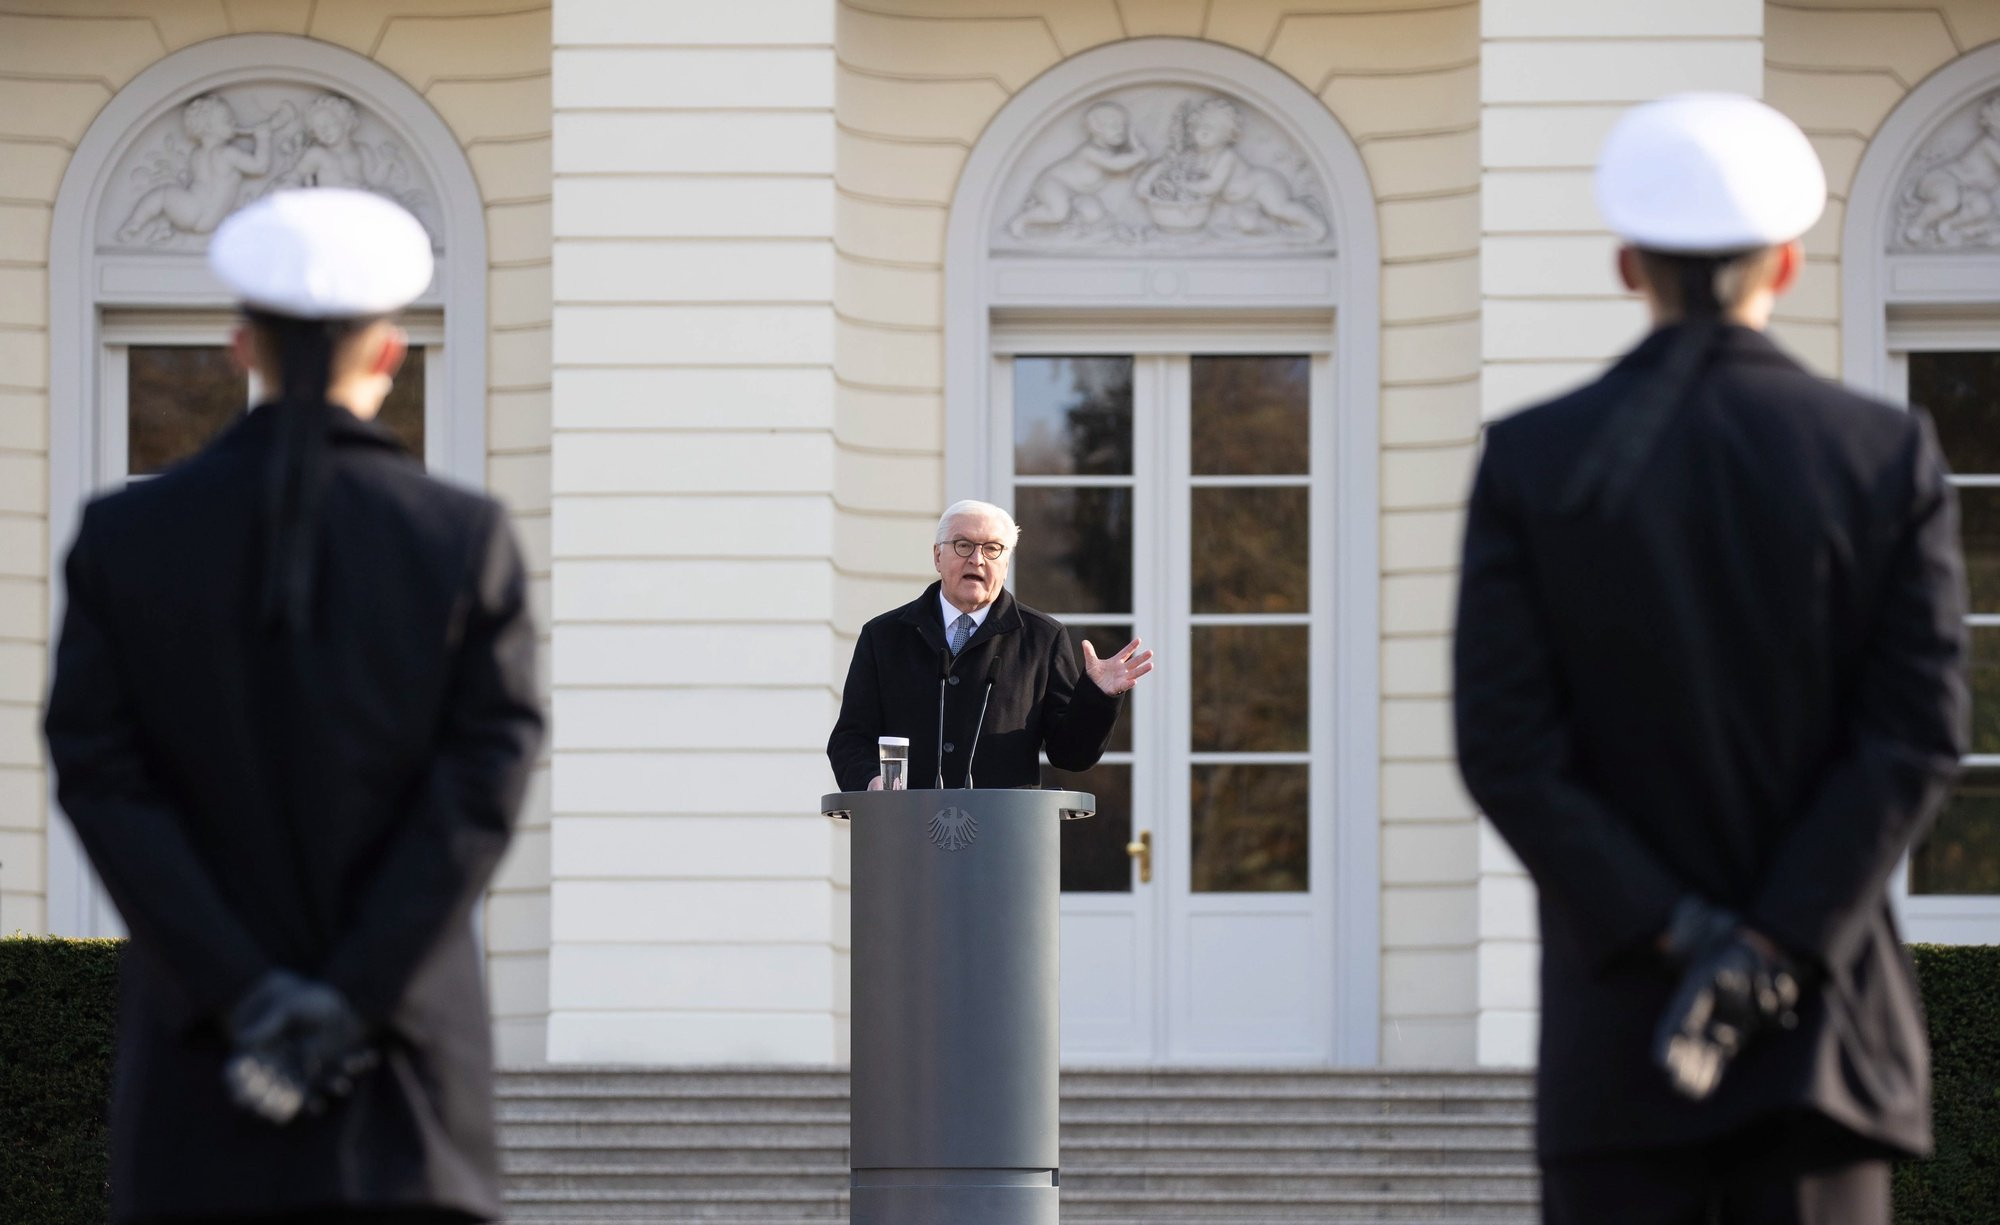 epa08815813 German President Frank-Walter Steinmeier delivers a speech during a swearing in ceremony of the German armed forces (Bundeswehr) soldiers in Berlin, Germany, 12 November 2020. The ceremony takes place on the 65th anniversary of the founding of the German army.  EPA/HAYOUNG JEON